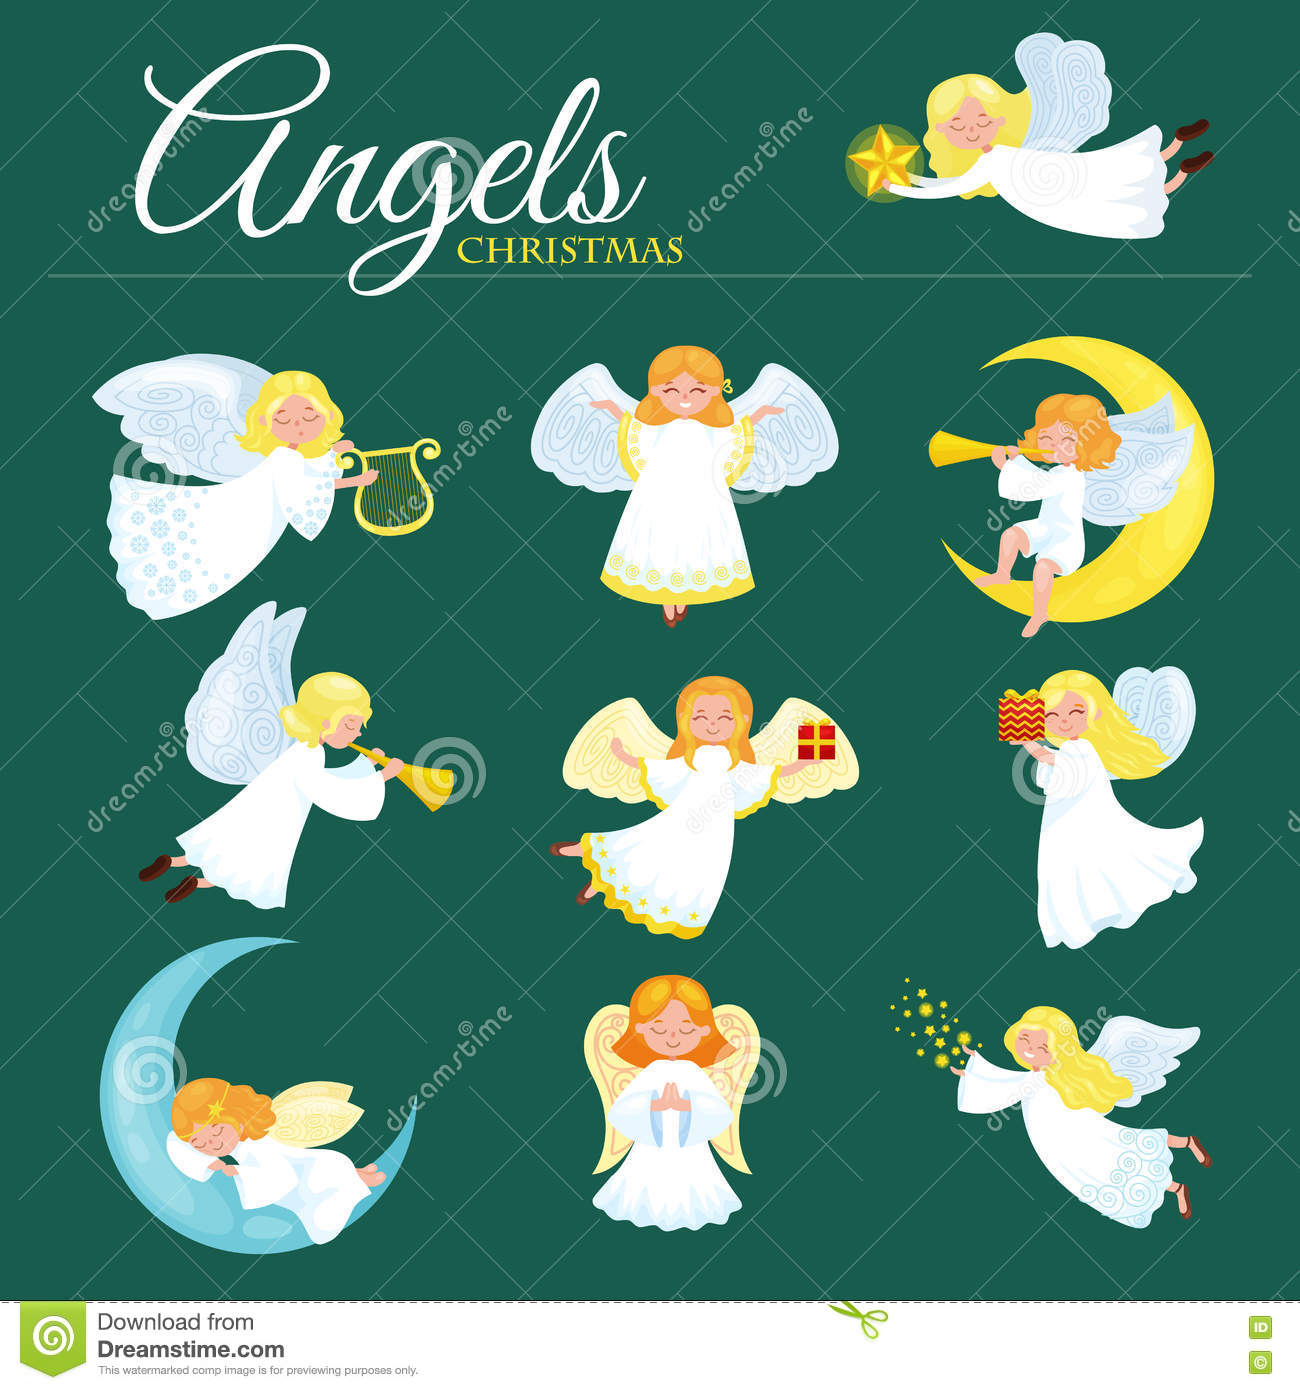 christmas holiday flying angel with wings and golden trumpet like symbol in christian religion or new year holiday vector illustration